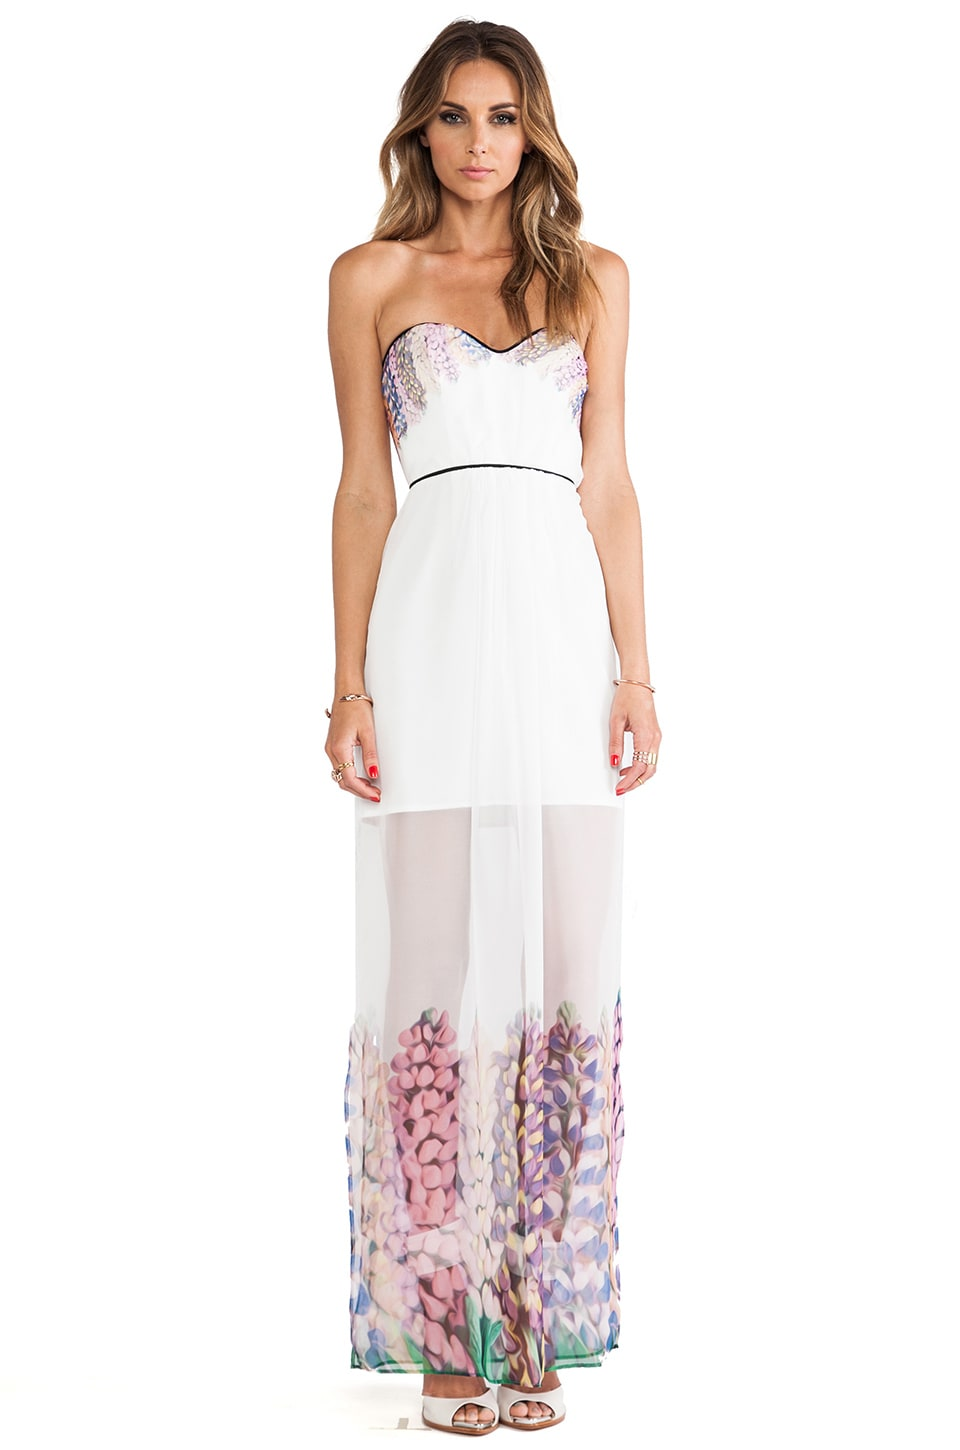 Alice McCall Pasadena California Dress in White